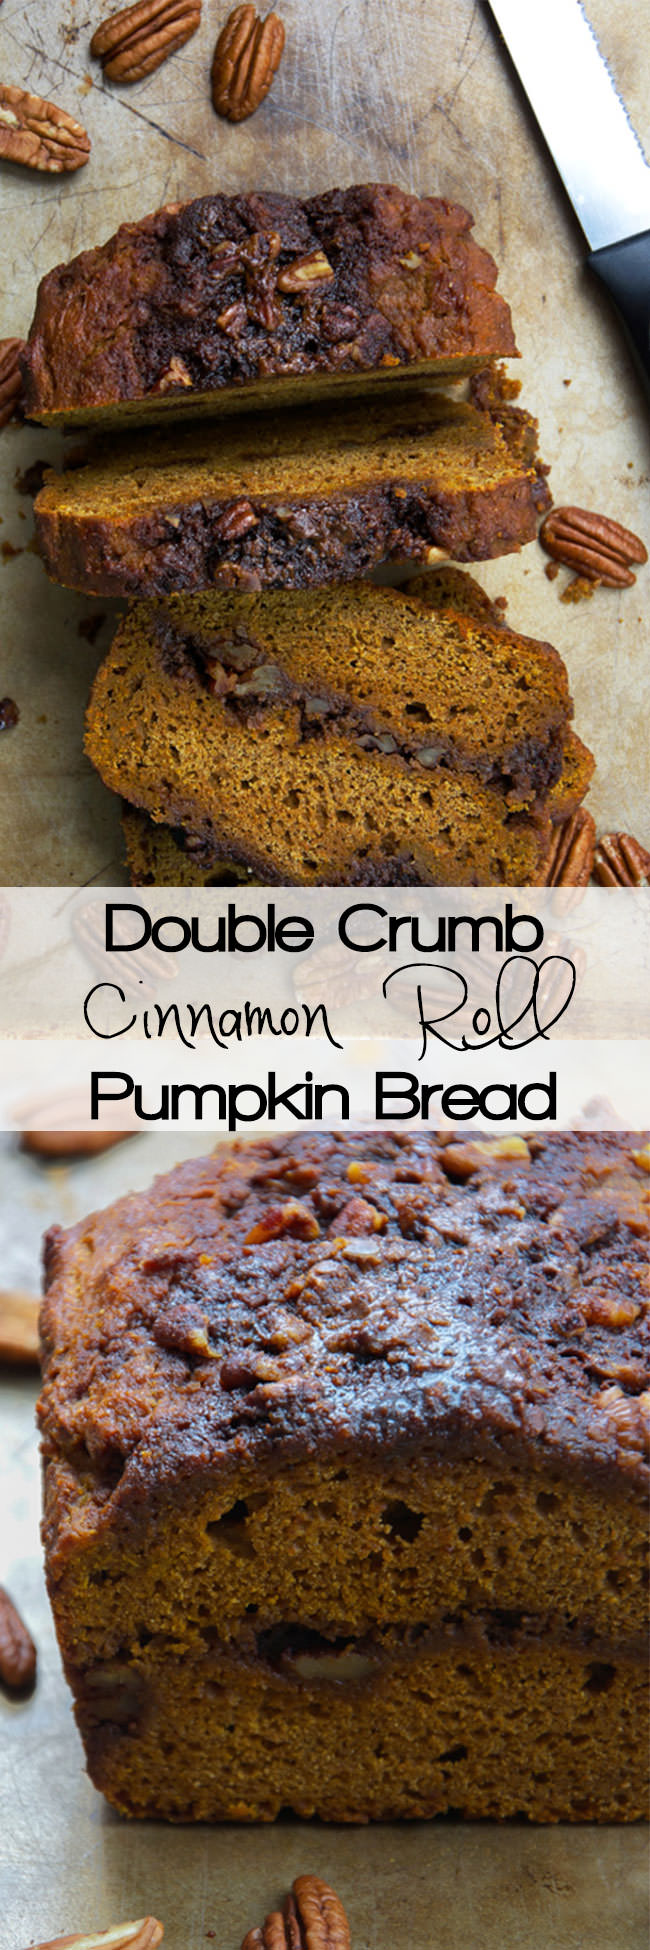 Healthier Double Crumb Cinnamon Roll Pumpkin Bread is moist and filled with a double sugary cinnamon roll filling! It is the best of both worlds that is easy to make, delicious and guilt free!